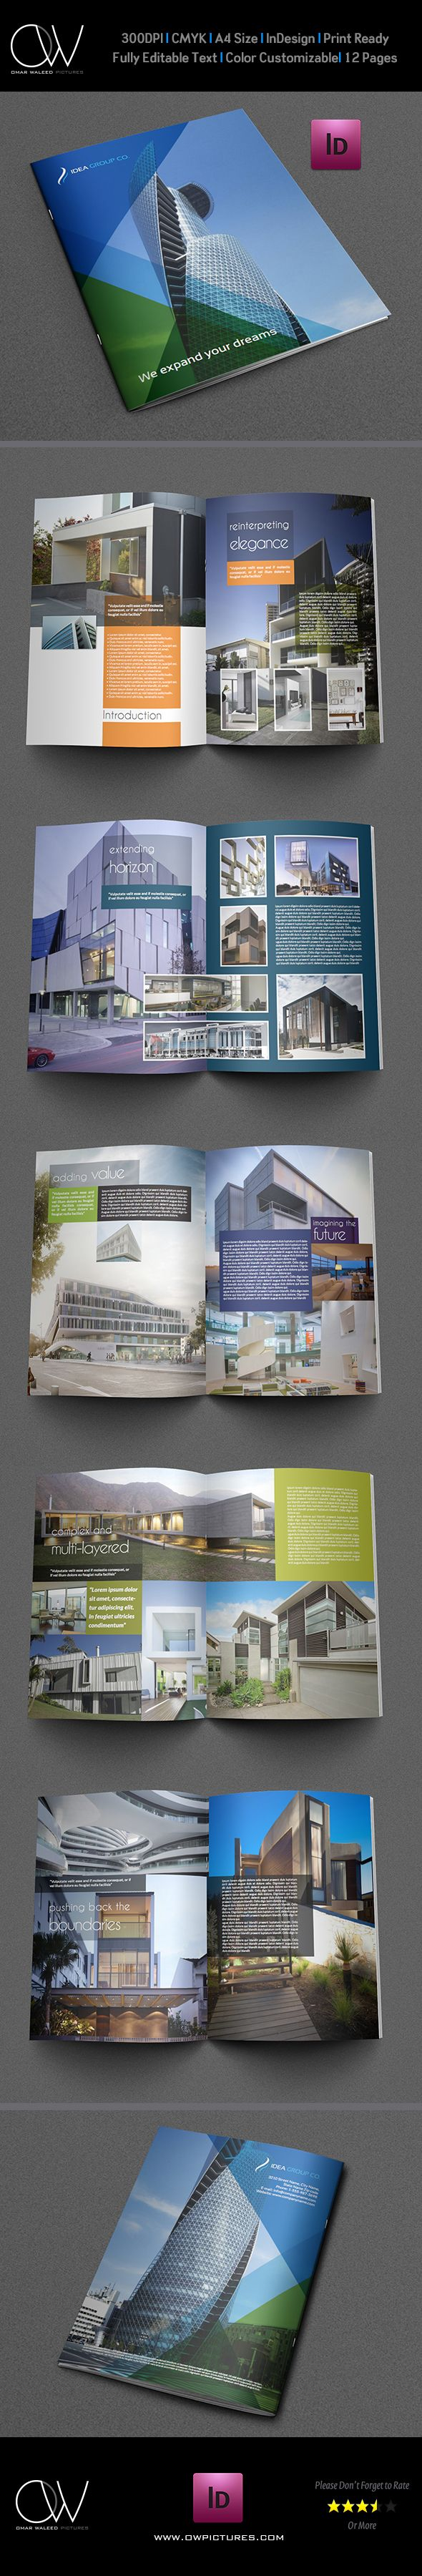 Architectural Brochure Template - 12 Pages by OW Pictures , via Behance